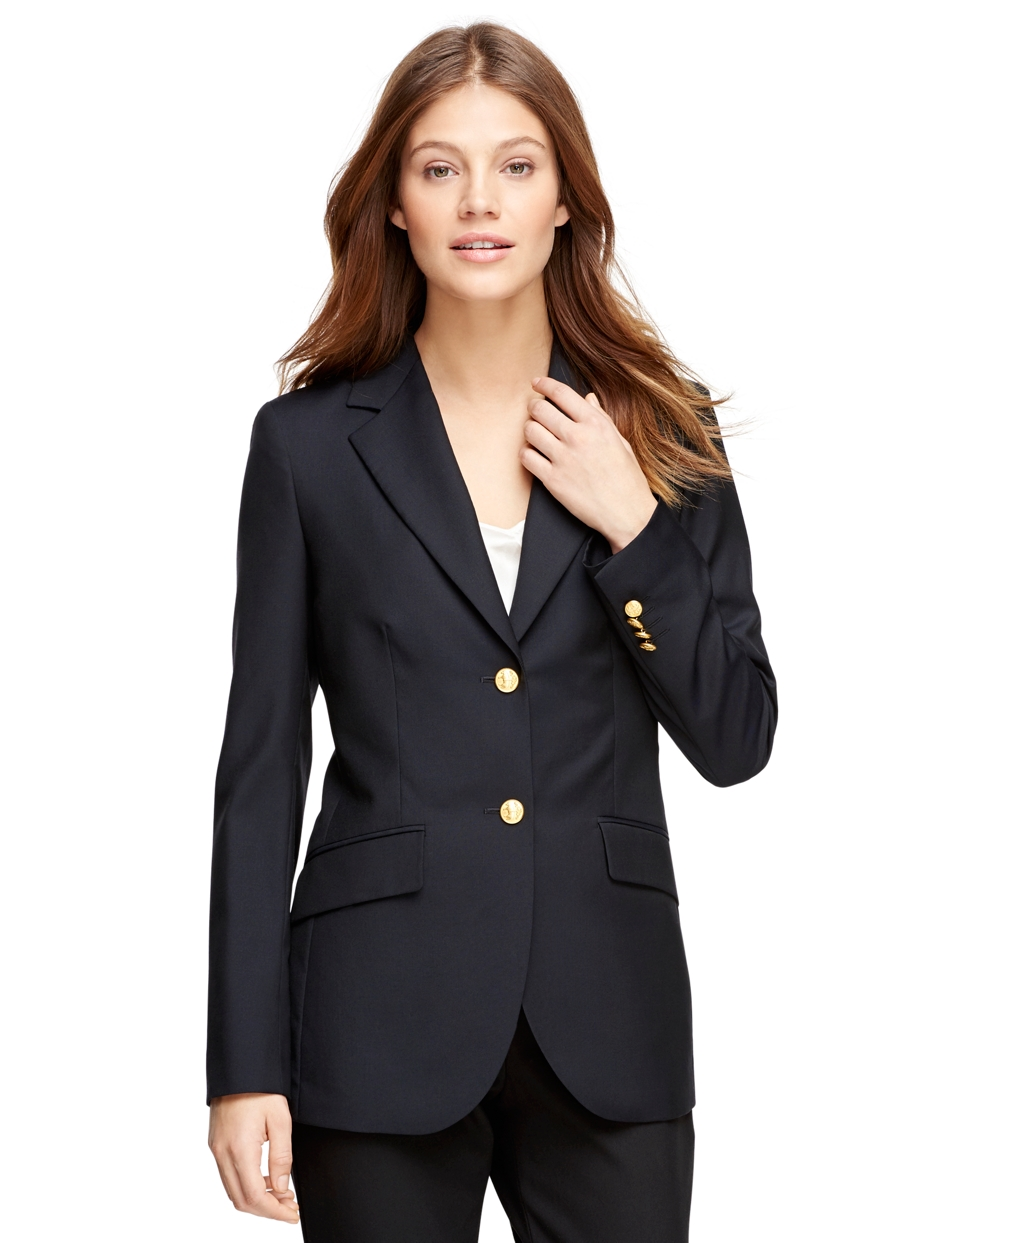 A wide choice of classic men's blazers, jackets, trousers, coata and a timeless collection of formalwear. Introducing a matching classic women's coat.